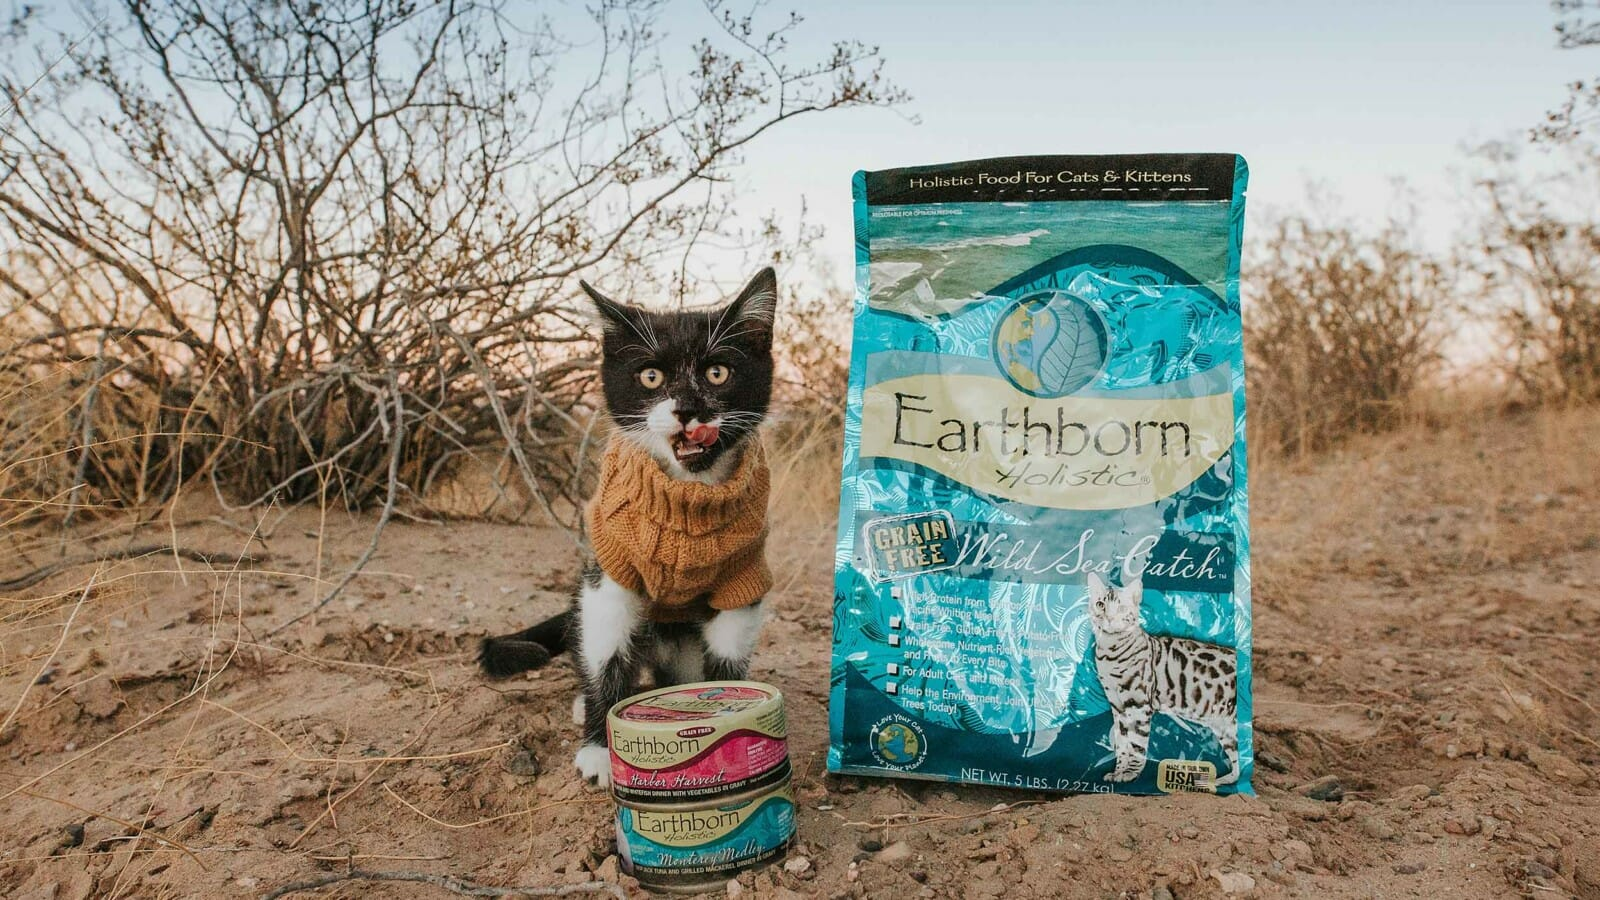 Small cat beside a bag of Earthborn Holistic Wild Sea Catch cat food